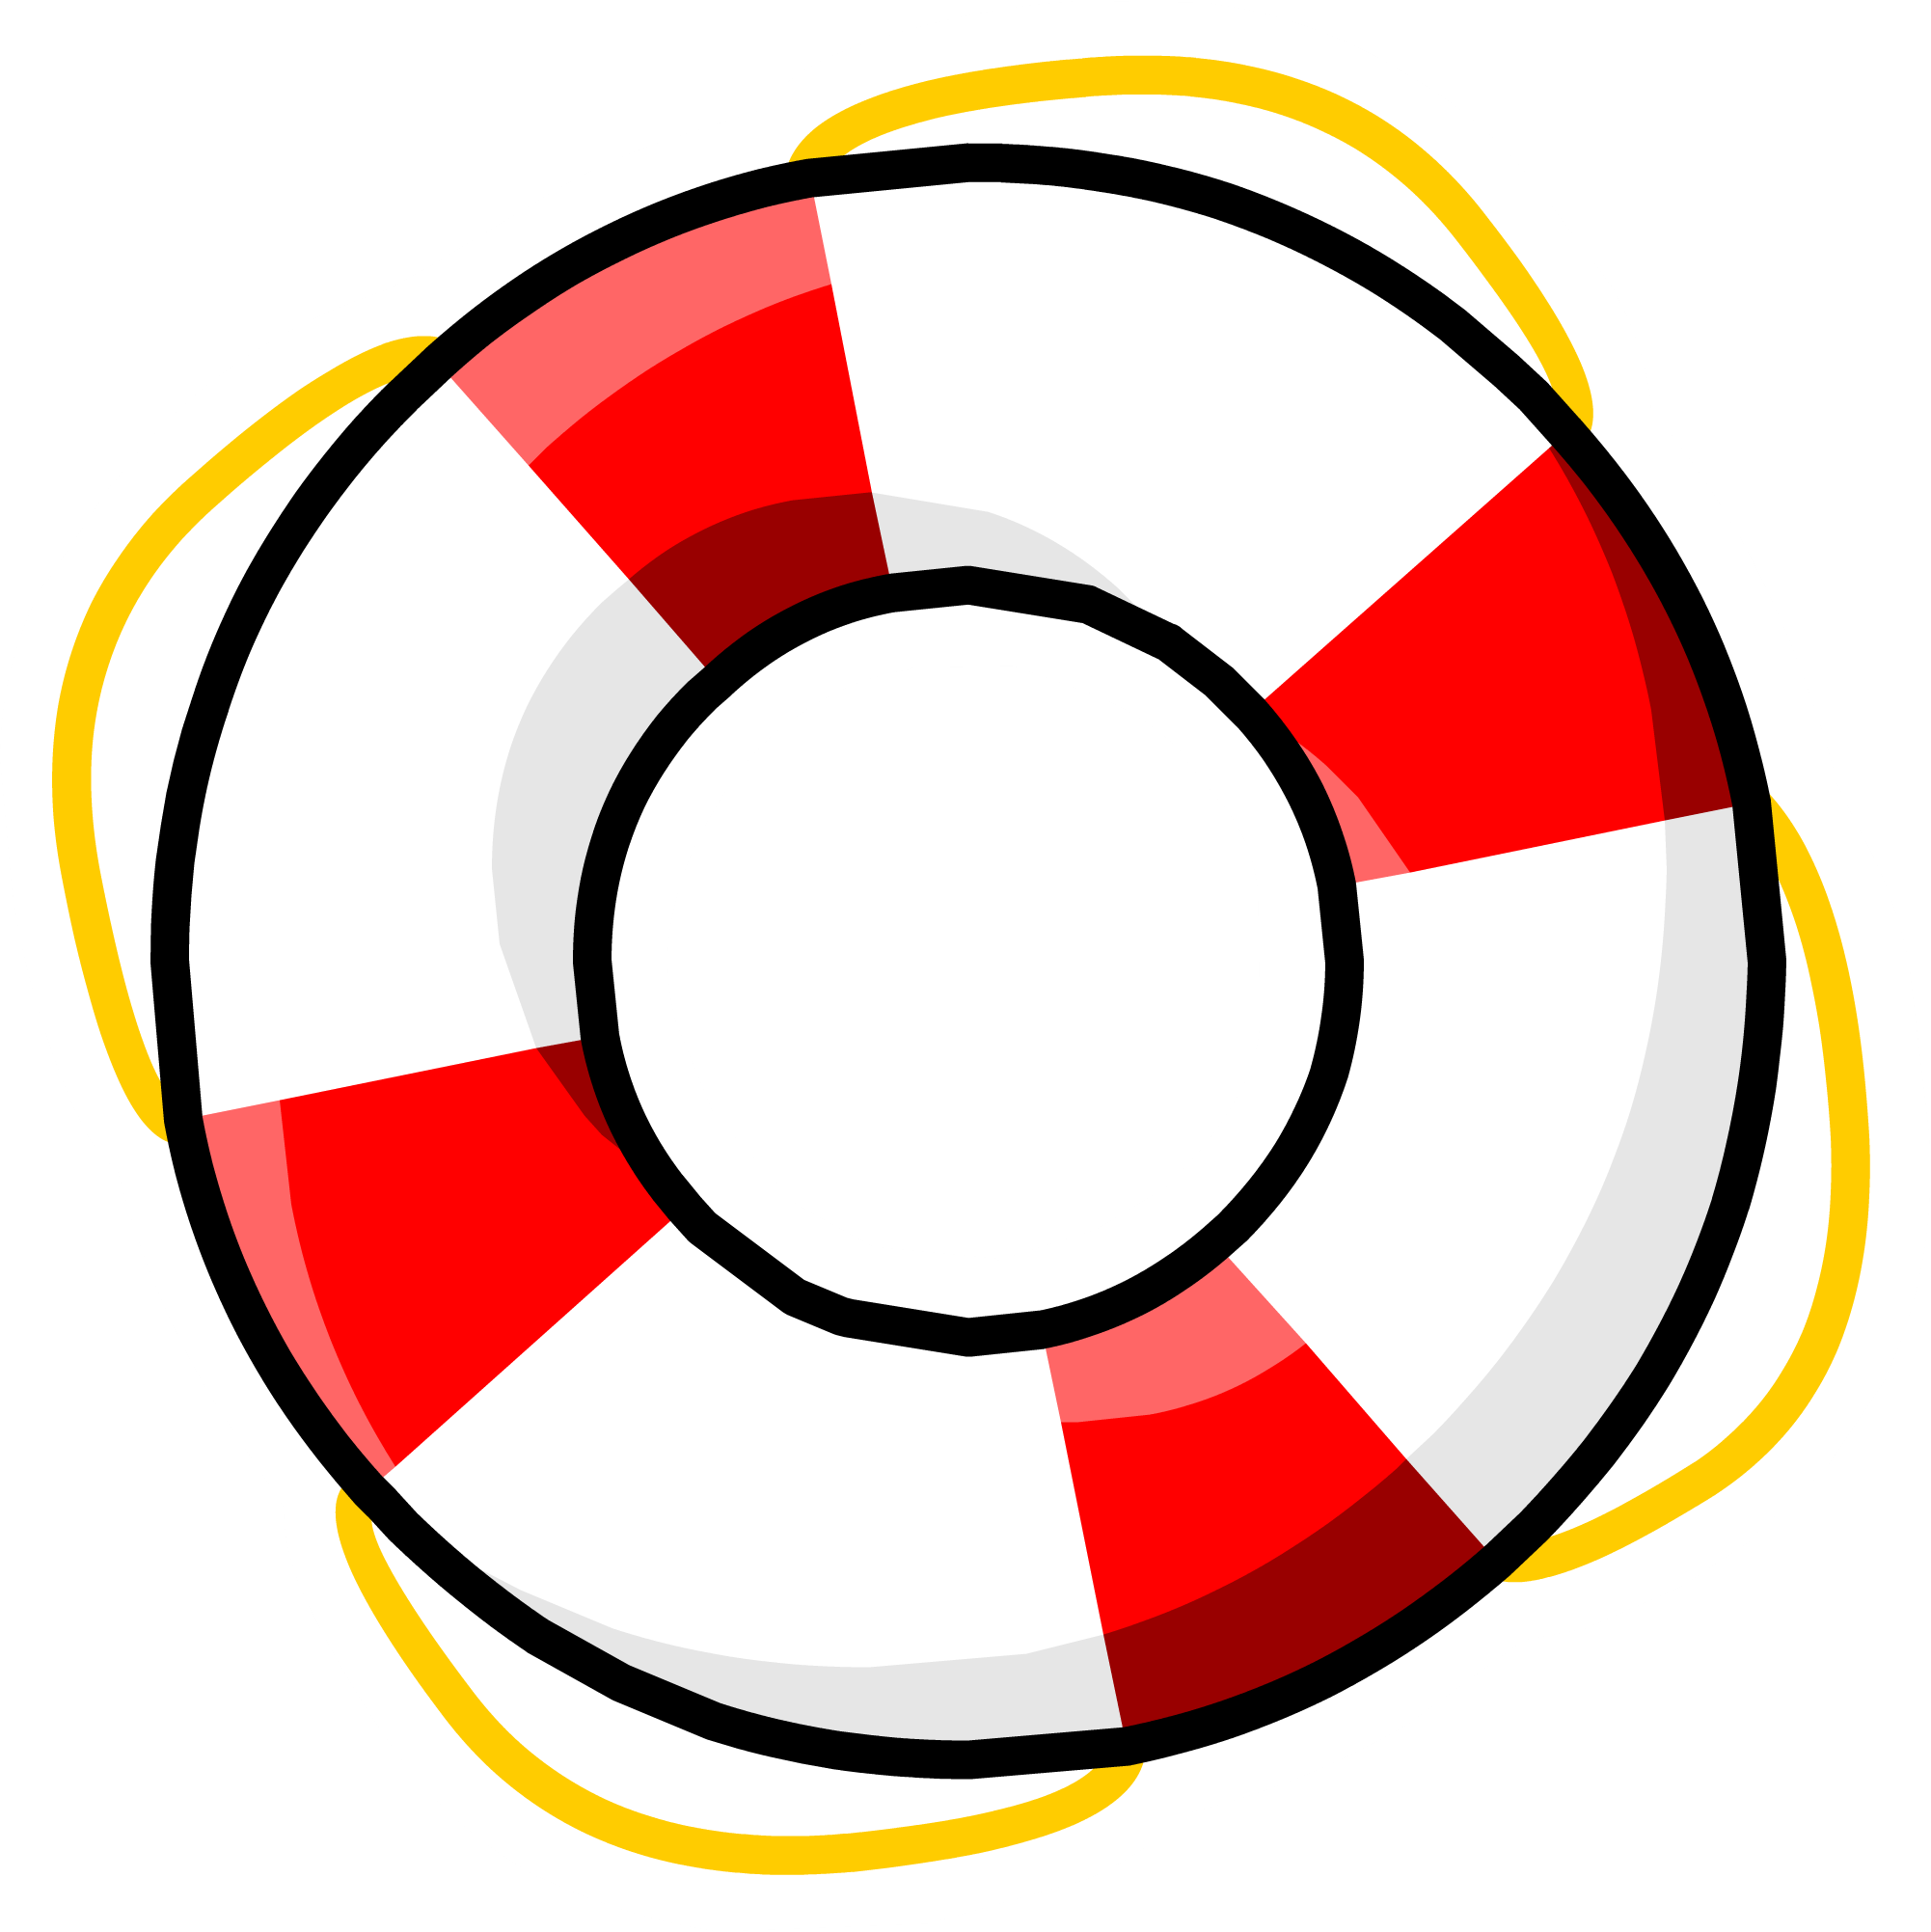 Life Ring pin | Club Penguin Wiki | FANDOM powered by Wikia